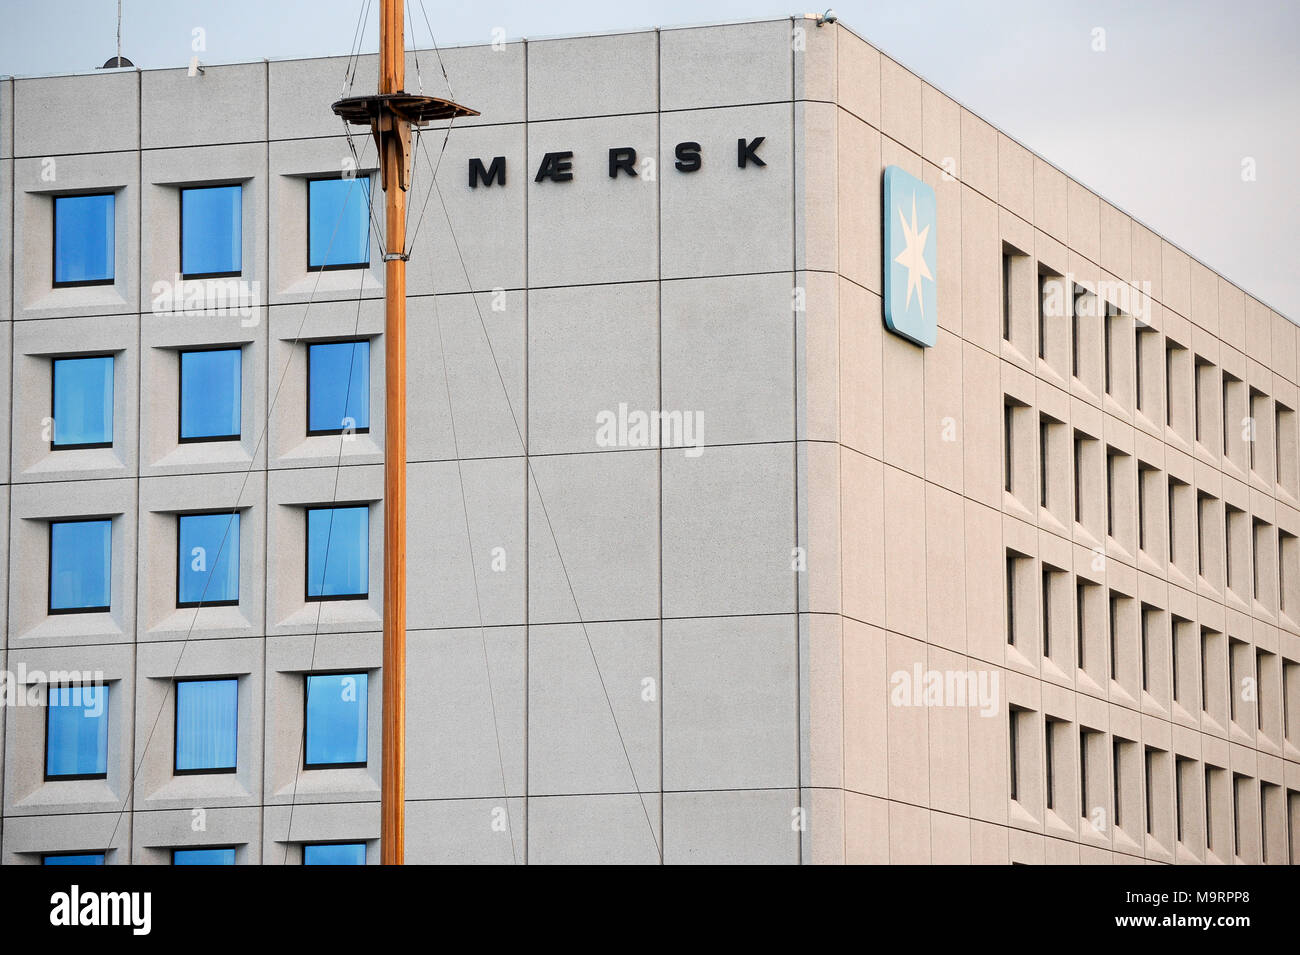 Headquaters Of A P Moller Maersk Group Danish Business Conglomerate In Transport Logistics And Energy Sector One Of The Largest Container Ship Ope Stock Photo Alamy